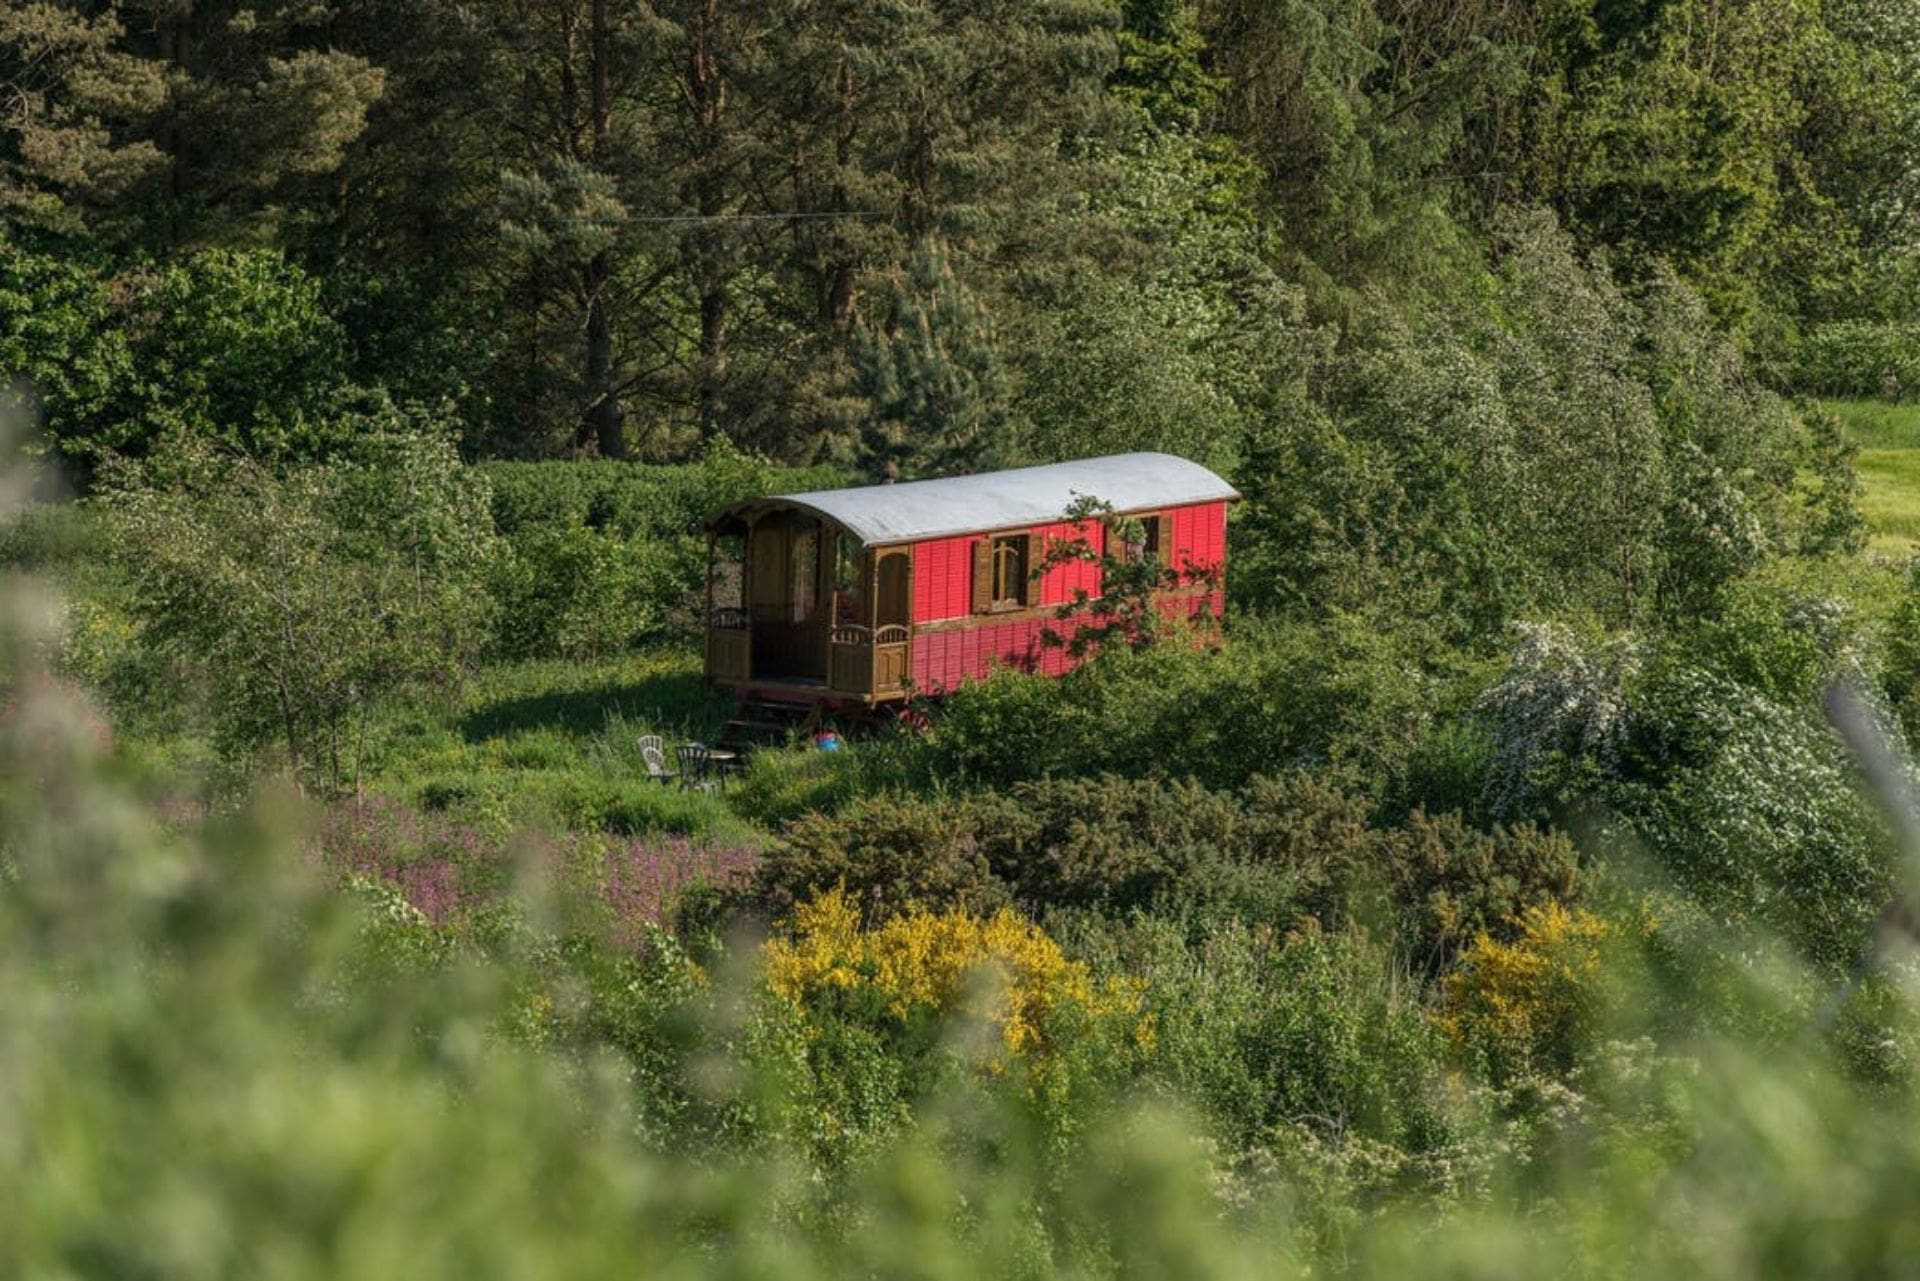 red-gypsy-caravan-in-a-field-russian-roulette-caravans-scottish-borders